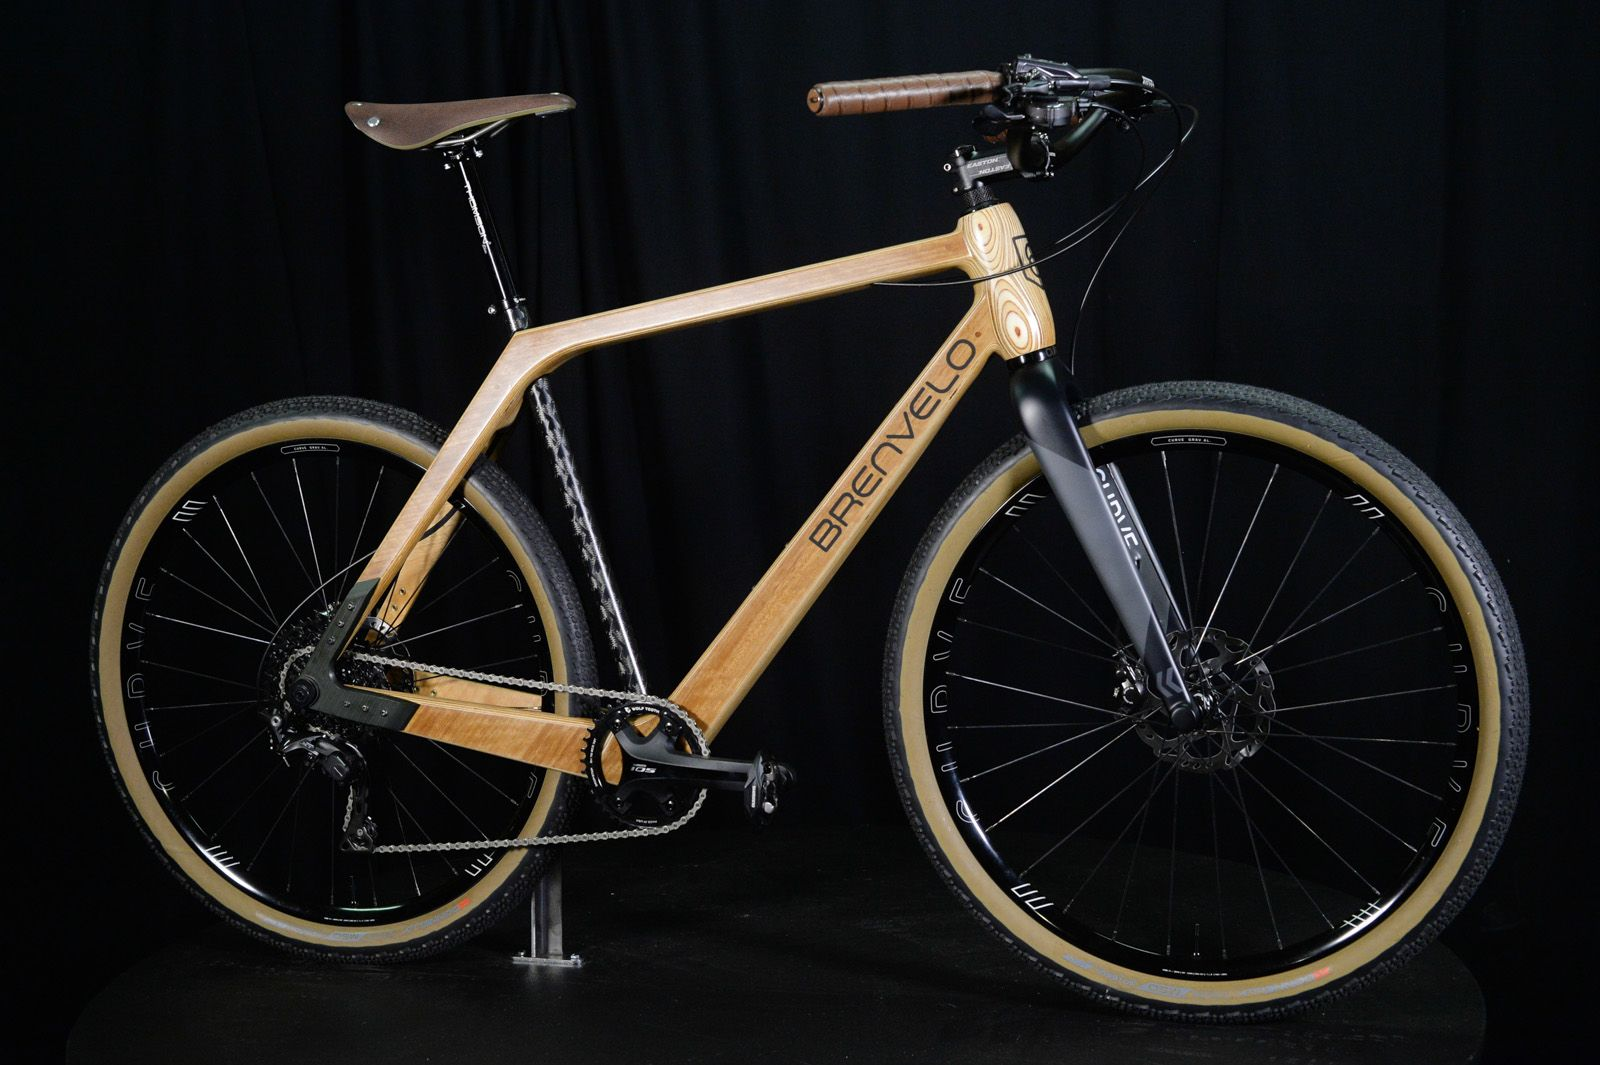 Brenvelo Plywood Carbon Gravel Bike | Handmade Bicycle Show Australia 2019